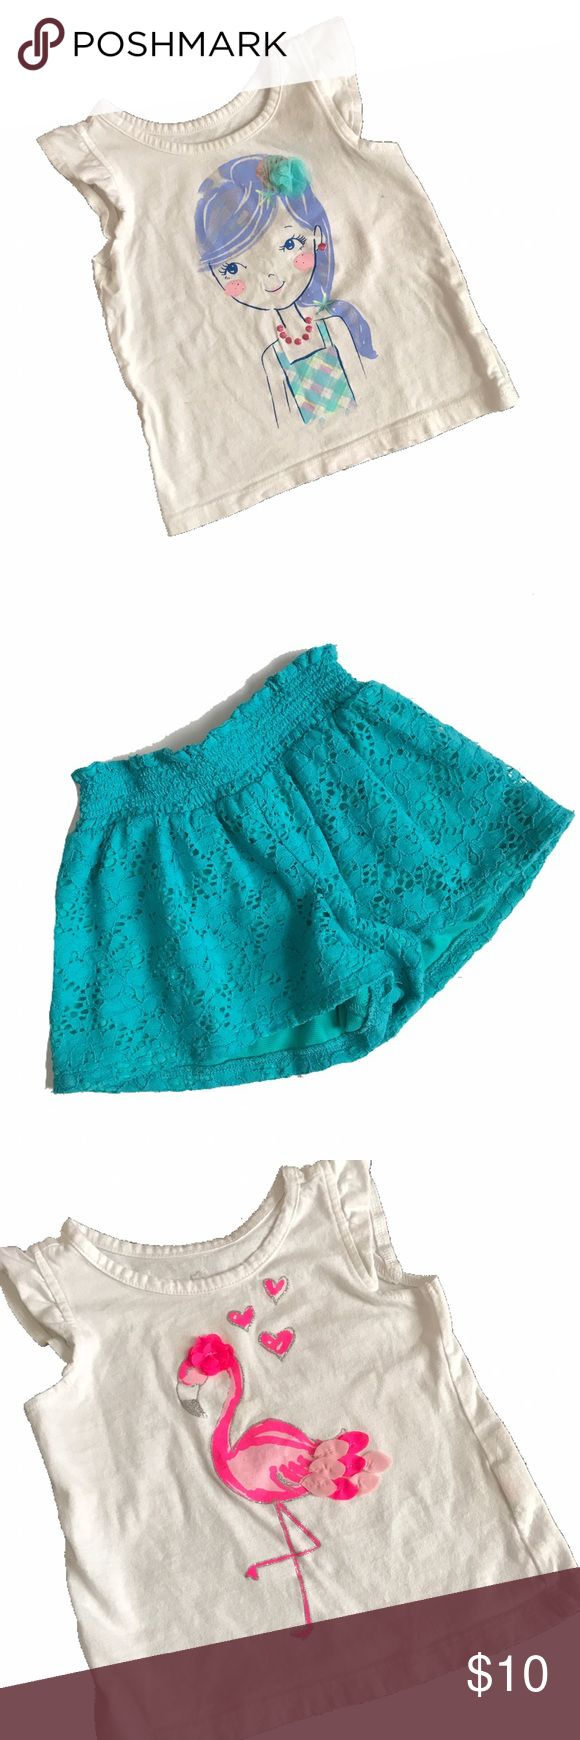 2 Children's Place Outfits 2 ruffle sleeve tank tops with coordinating shorts.  Both tops have some marks.  See photos.  18-24 months except for the teal lace shorts.  Those are 18 months but run BIG.  B8.10 Children's Place Matching Sets